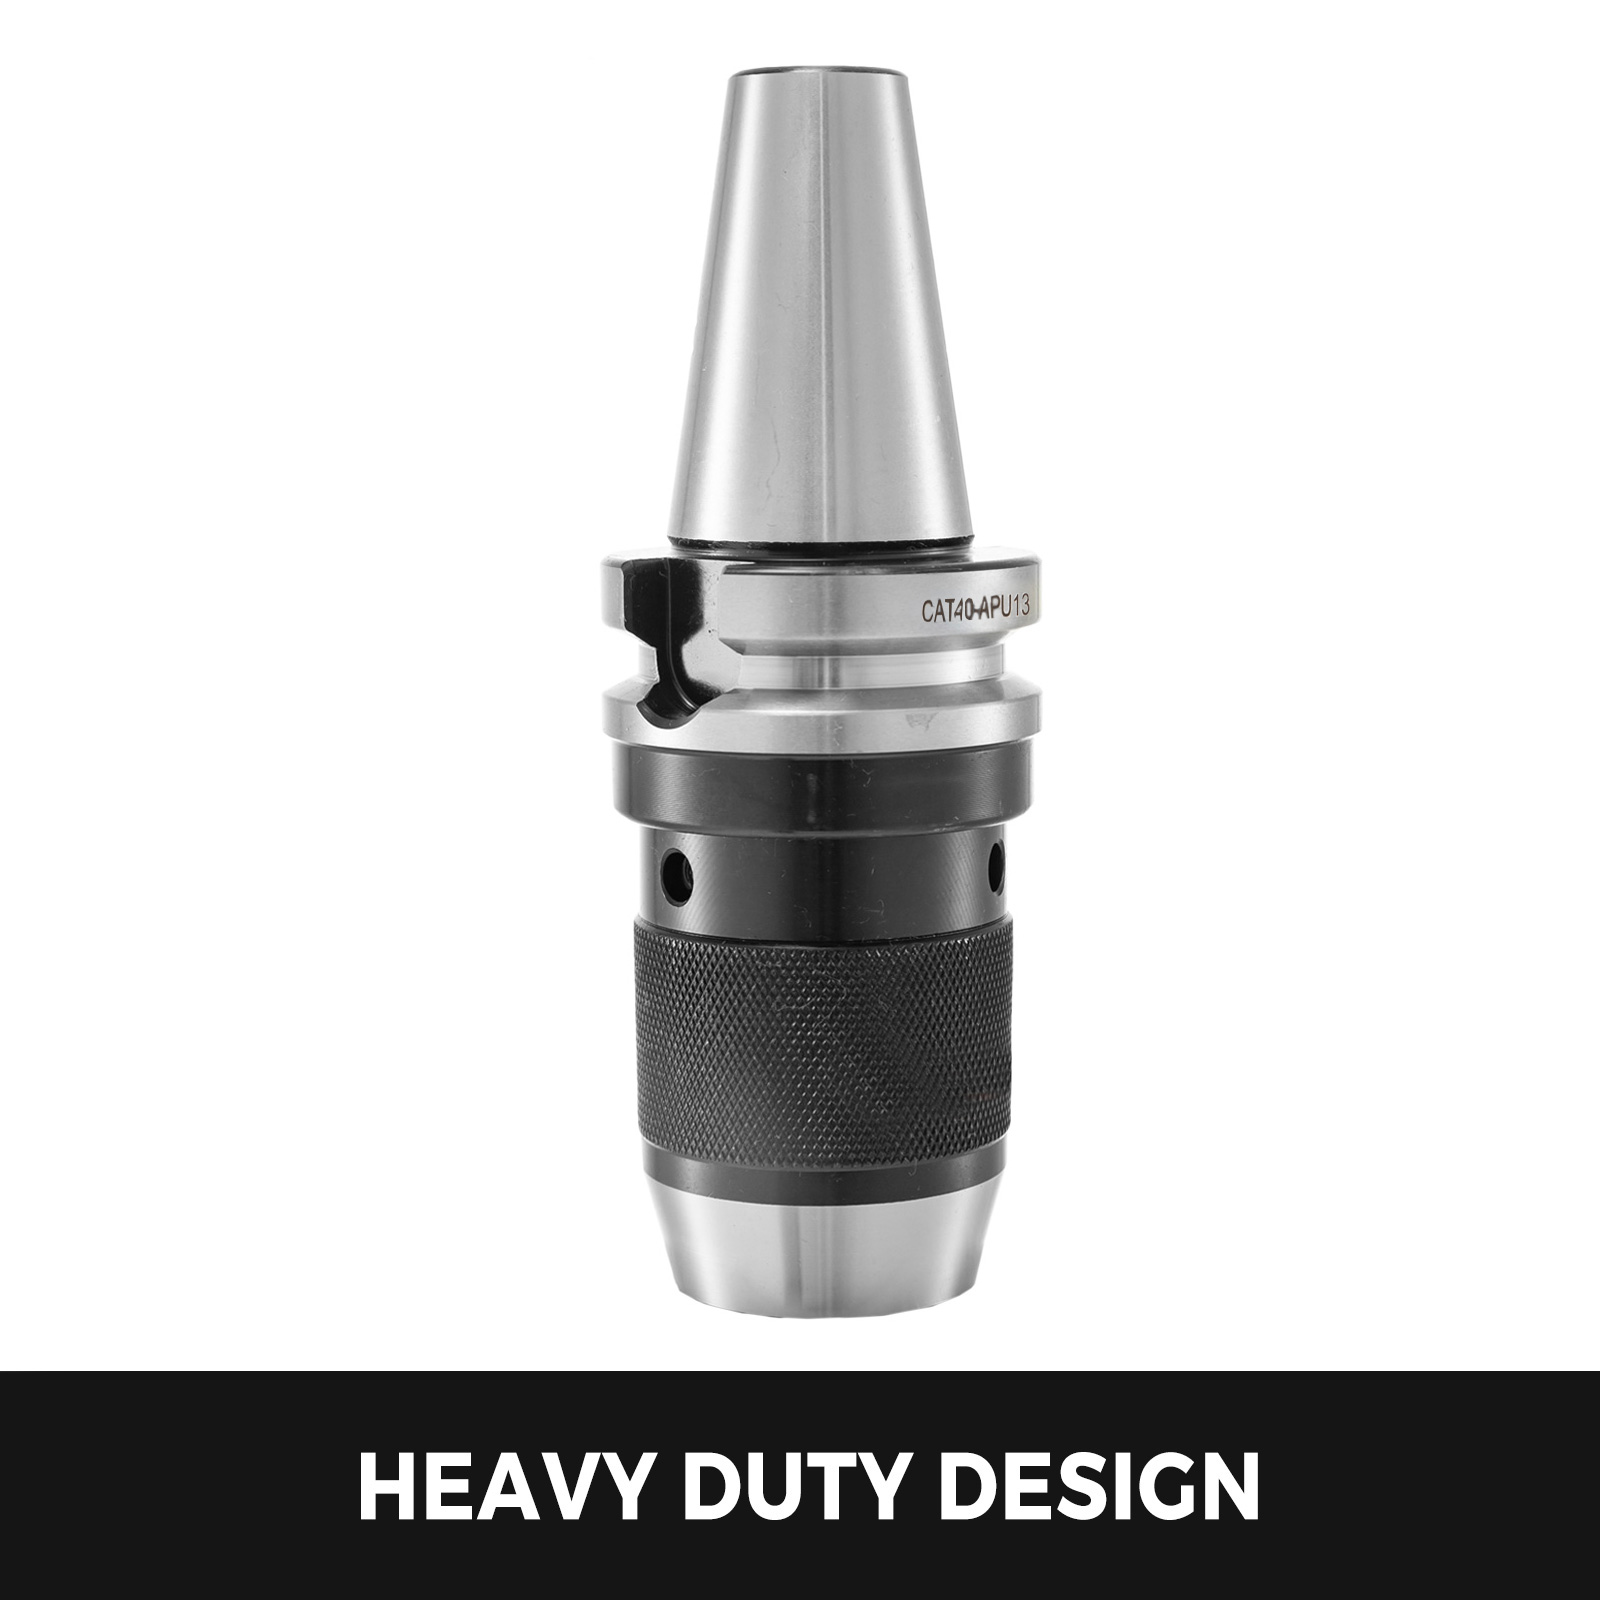 HGC CAT40 Keyless Drill Chuck 1//2 Fits On Haas CNC Easy Great Tool Holder